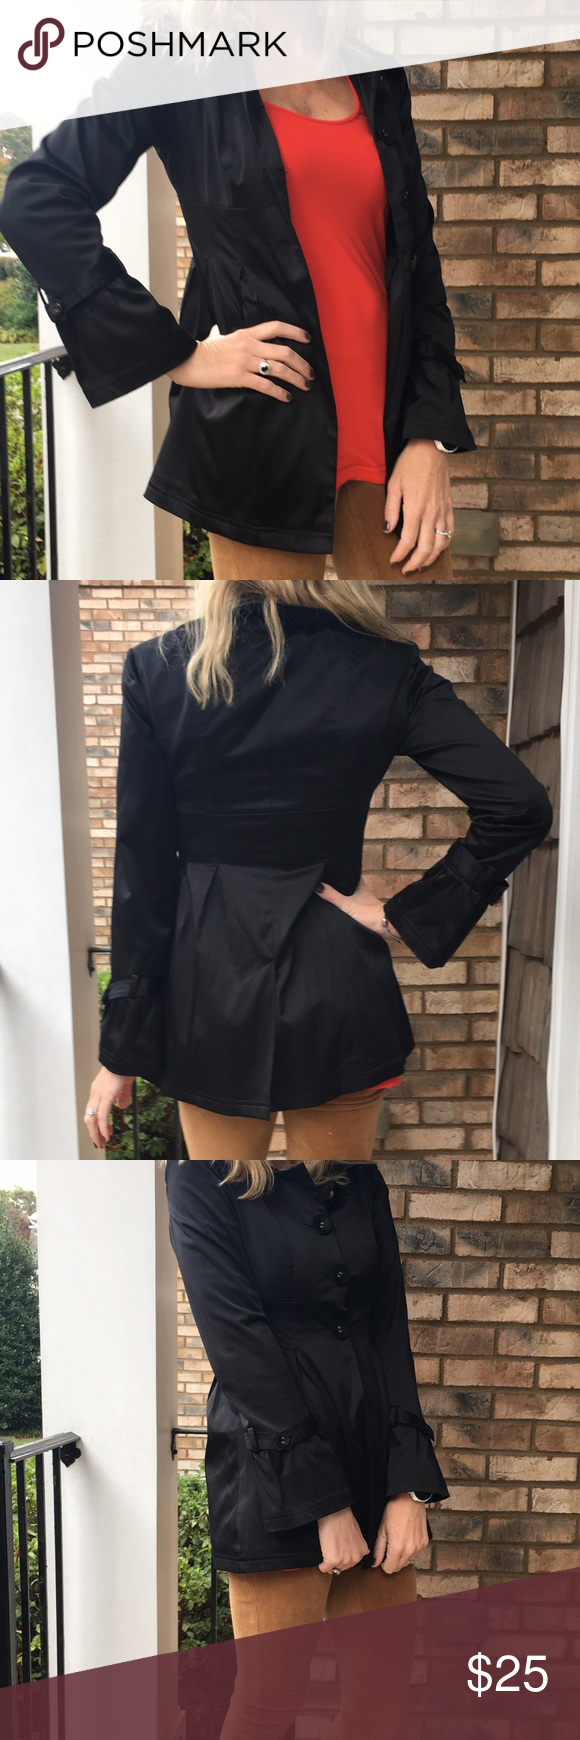 Black button down jacket In new condition with no rips or stains. I don't think it's ever been worn. Gorgeous tunic length jacket. Cotton/poly blend. Fully lined. Slight flair at the waist. Too tight for my C boobs when buttoned, but fits great when left open. Thanks for looking.💕 Belks Jackets & Coats Trench Coats